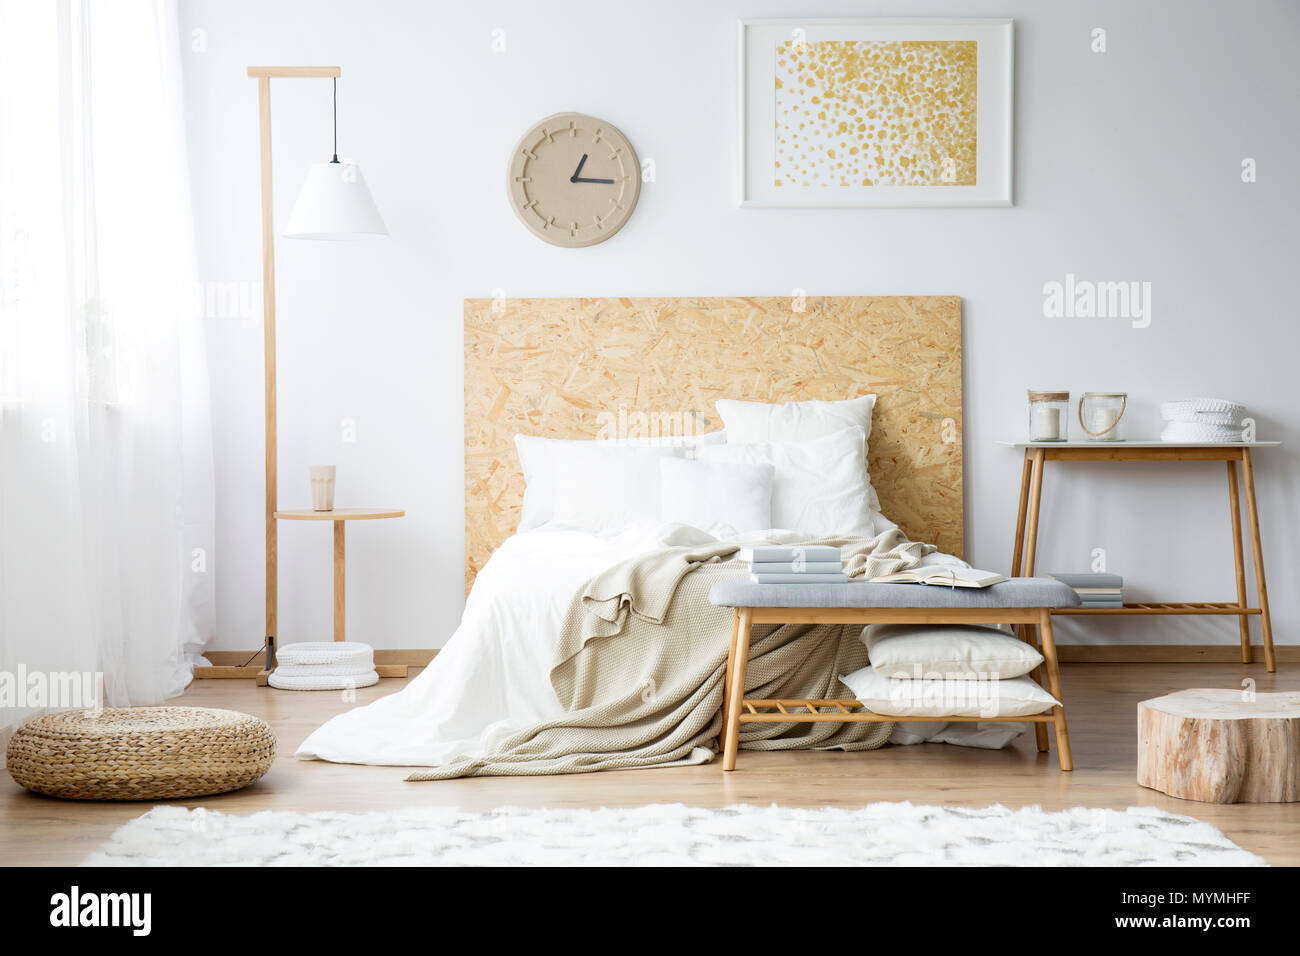 Paper Clock And Gold Painting On The Wall Above Bed With Beige Bedsheets In Bedroom With Pouf And Wooden Furniture Stock Photo Alamy